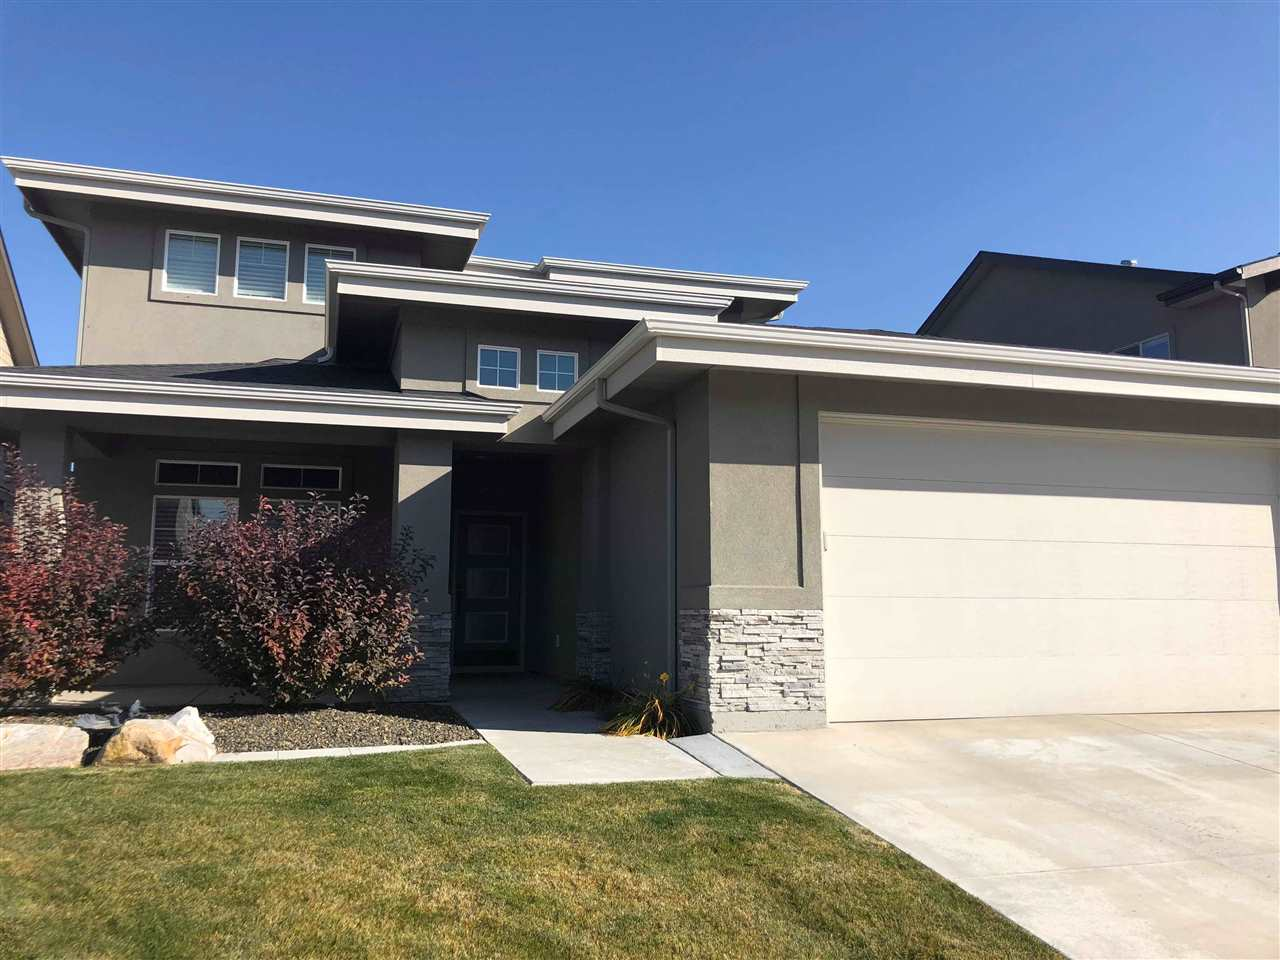 8118 S Red Cliff Ave, Boise, Idaho 83716, 5 Bedrooms, 2.5 Bathrooms, Rental For Rent, Price $2,175, 98712045